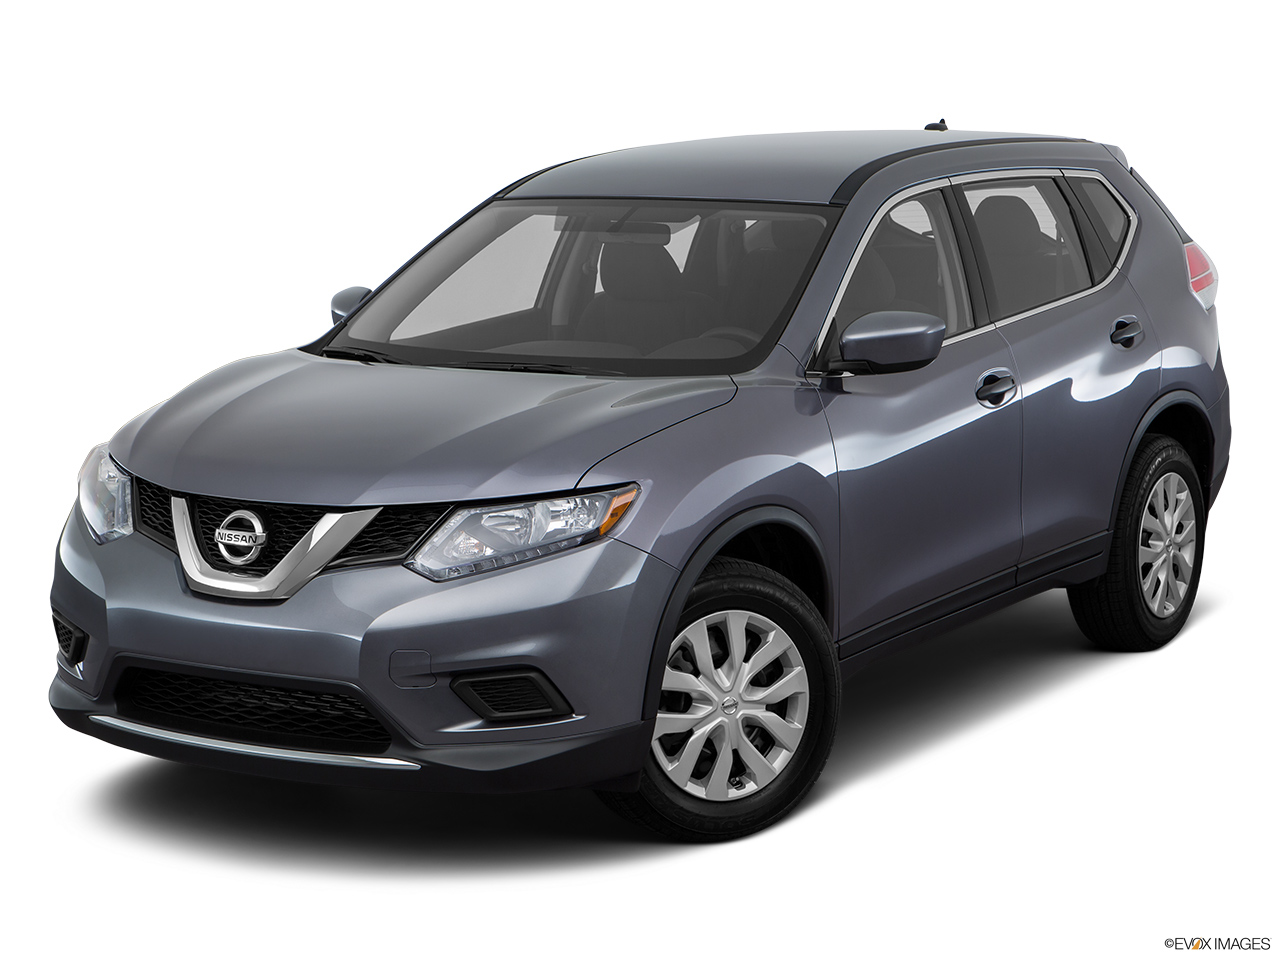 nissan x trail 2016 2 5 sv 4wd in uae new car prices. Black Bedroom Furniture Sets. Home Design Ideas